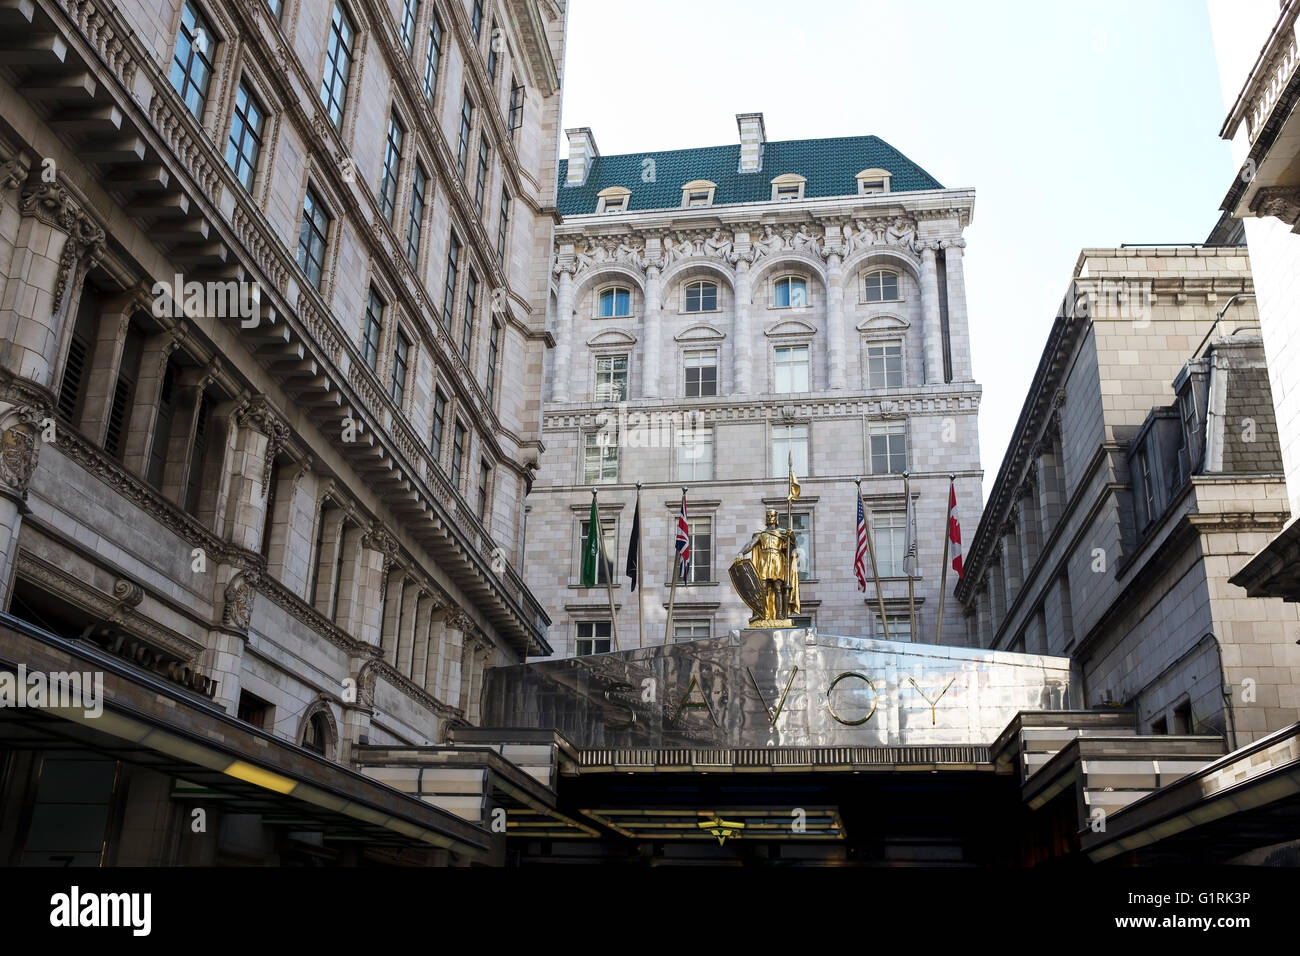 The metallic entrance canopy of the Savoy Hotel in London UK & The metallic entrance canopy of the Savoy Hotel in London UK Stock ...